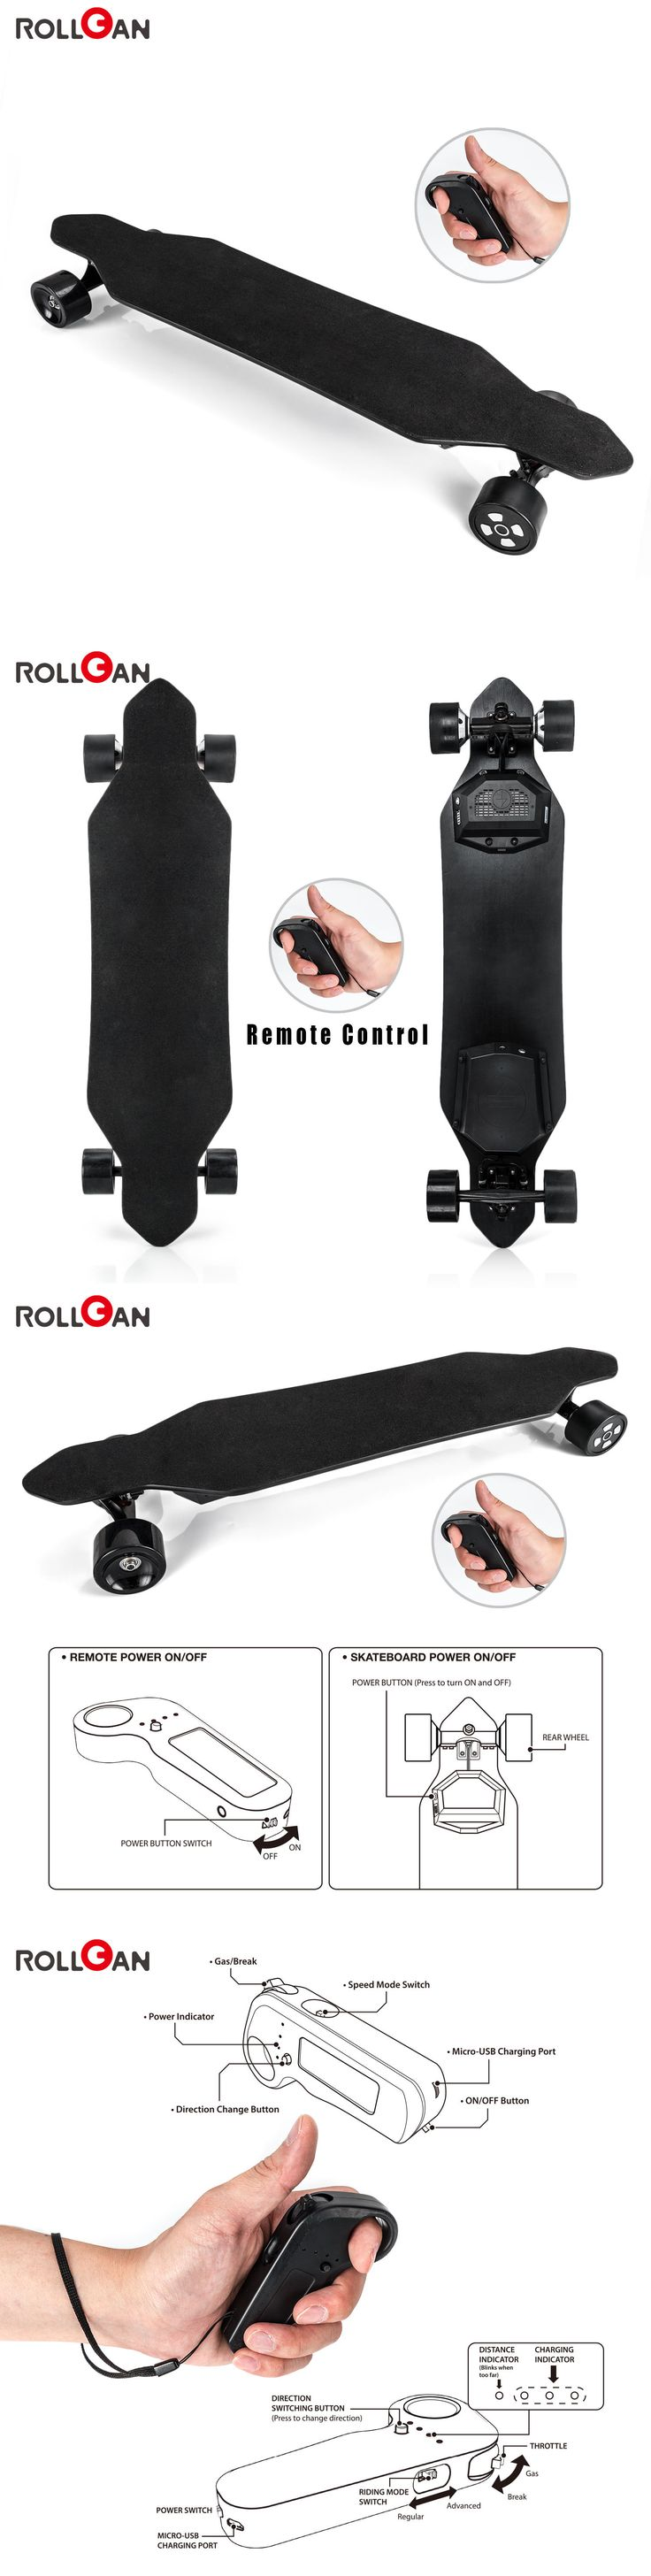 Skateboards-Complete 16264: Rollgan Electric Skateboard Wireless Remote Control Dual Hub Motor Longboard -> BUY IT NOW ONLY: $499 on eBay!